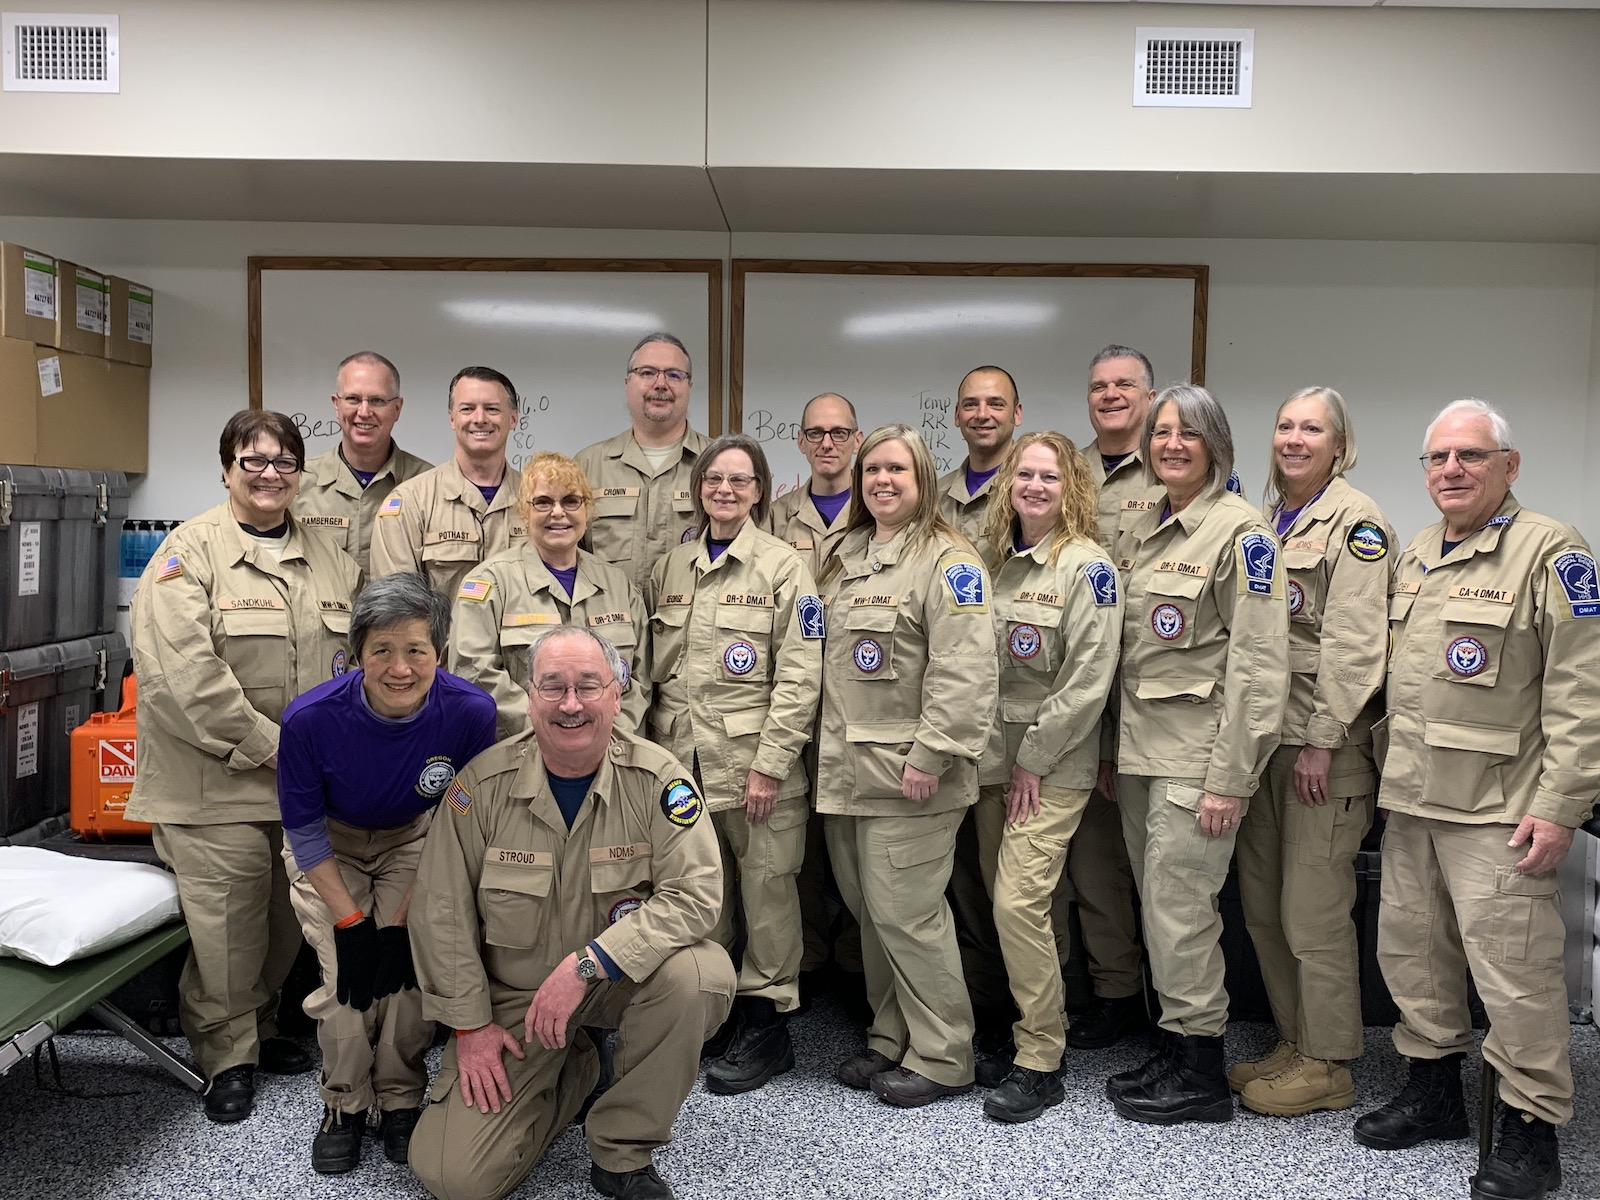 Jamie Baxter (fifth from left) with her fellow National Disaster Medical System Disaster Medical Assistance Team members at the Camp Ashland Army National Guard Base near Omaha, Nebraska.